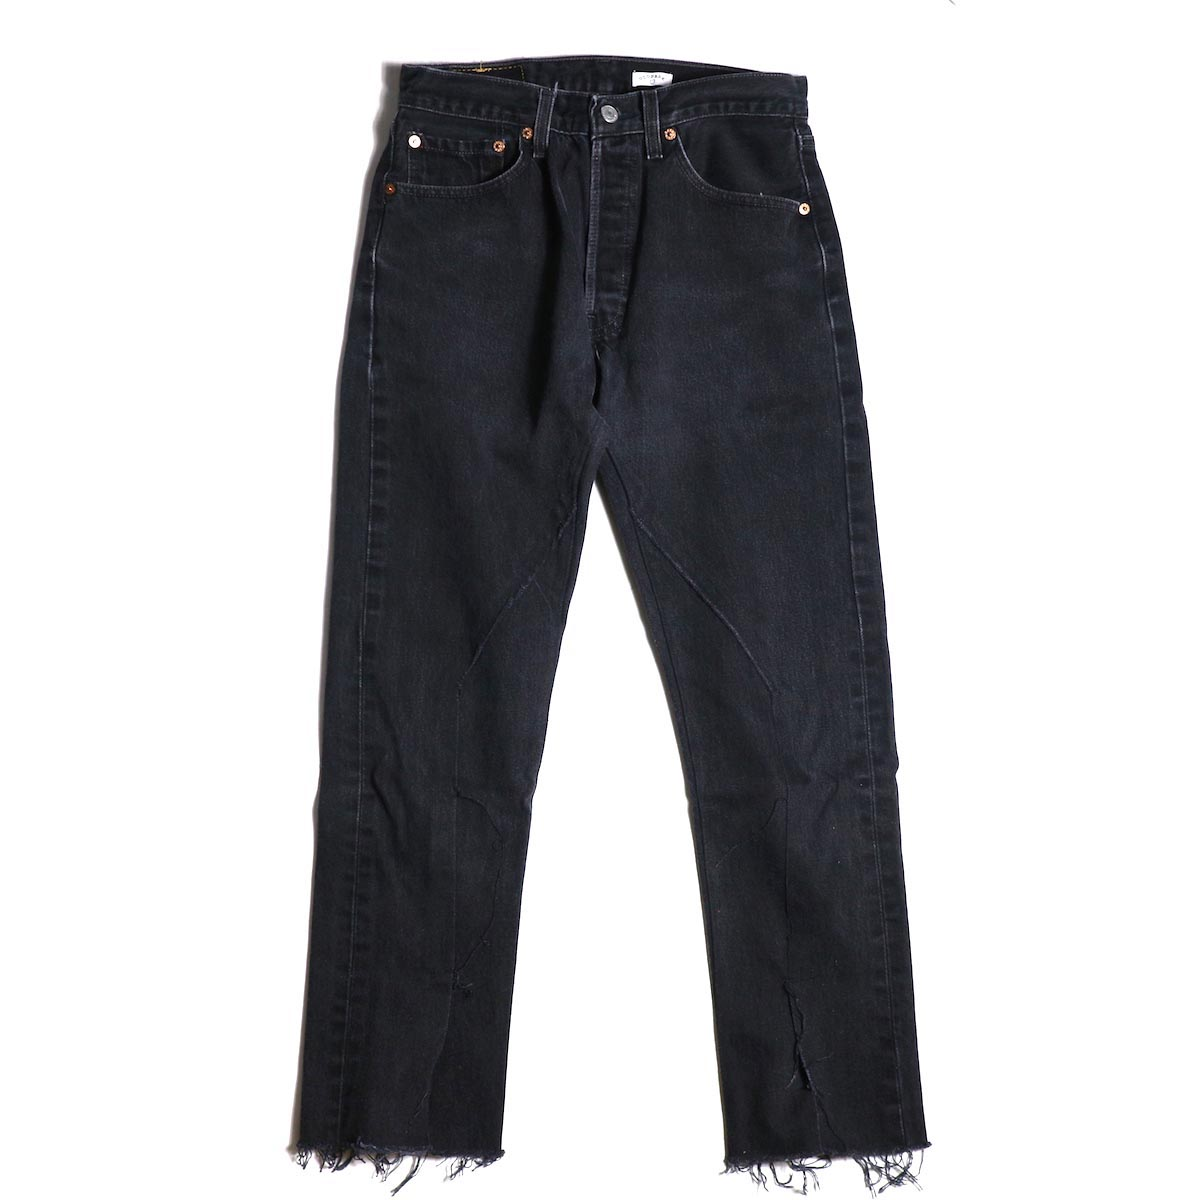 OLD PARK / SLIT JEANS (S size) -typeD